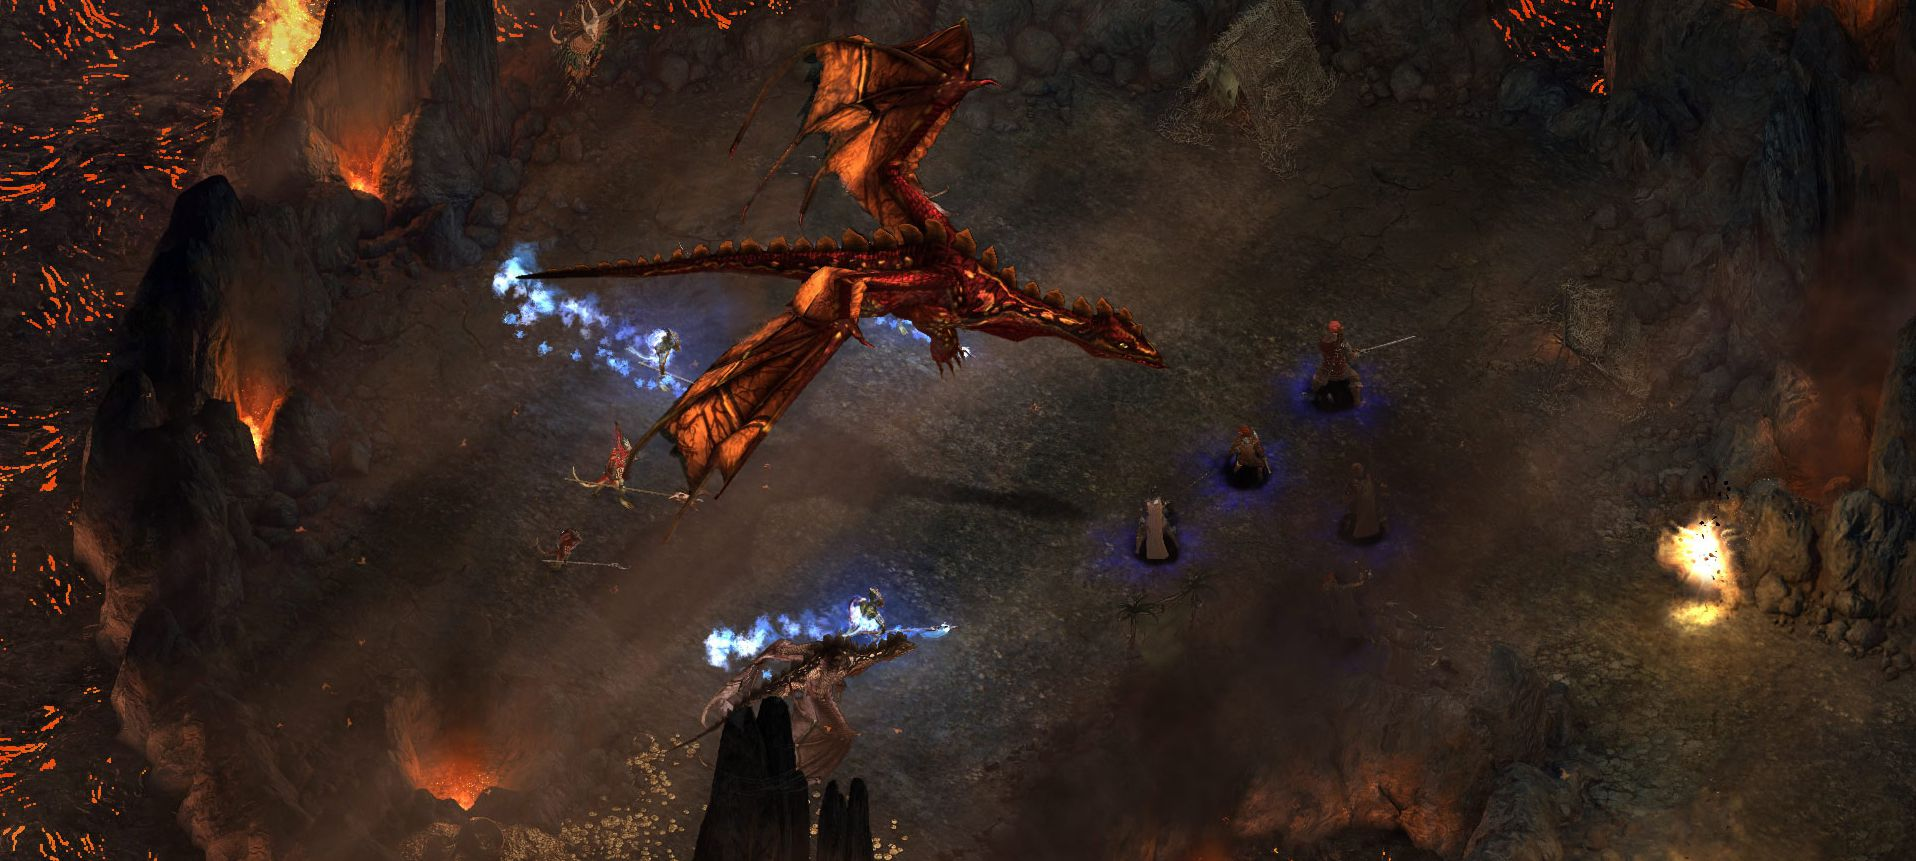 How Pillars of Eternity rewrites the rules for role-playing